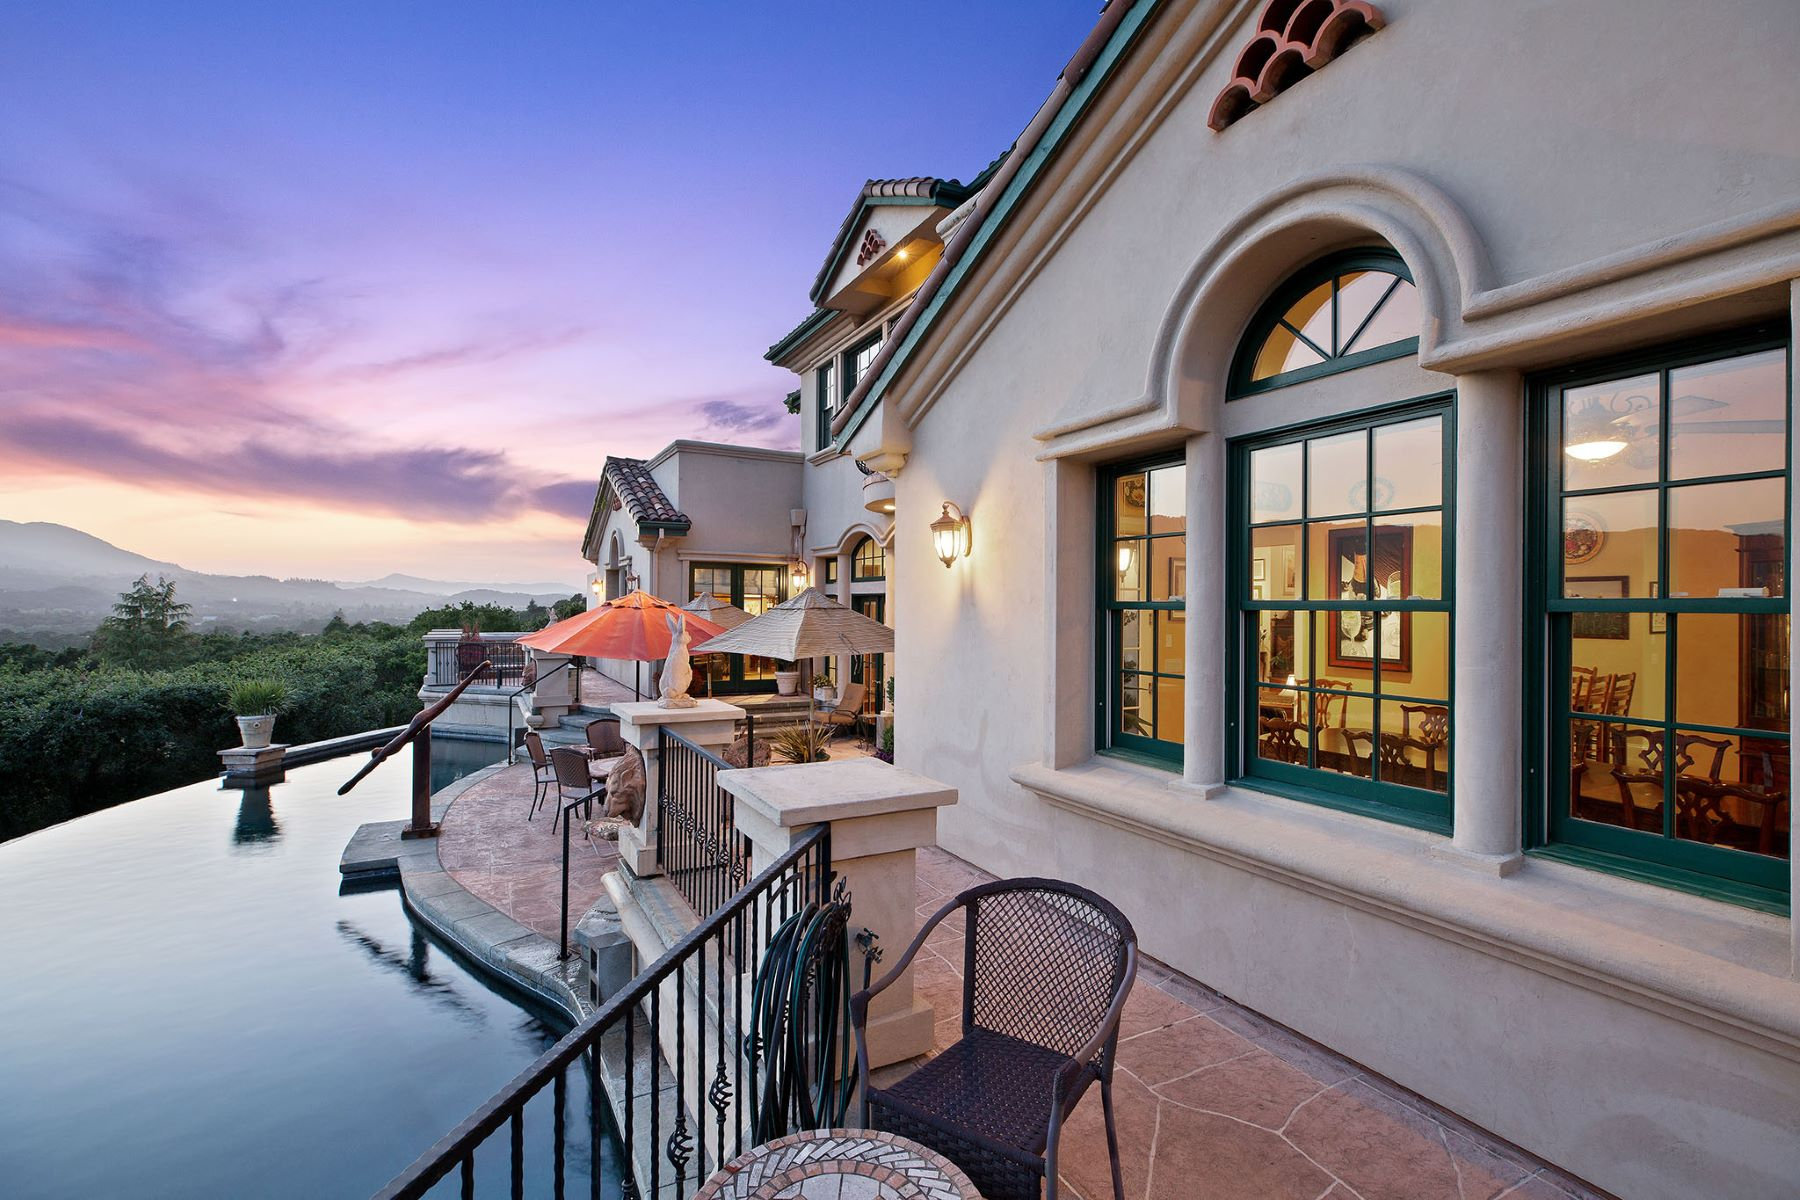 Single Family Homes for Active at Mediterranean Villa With Sweeping Views 405 London Way Sonoma, California 95476 United States